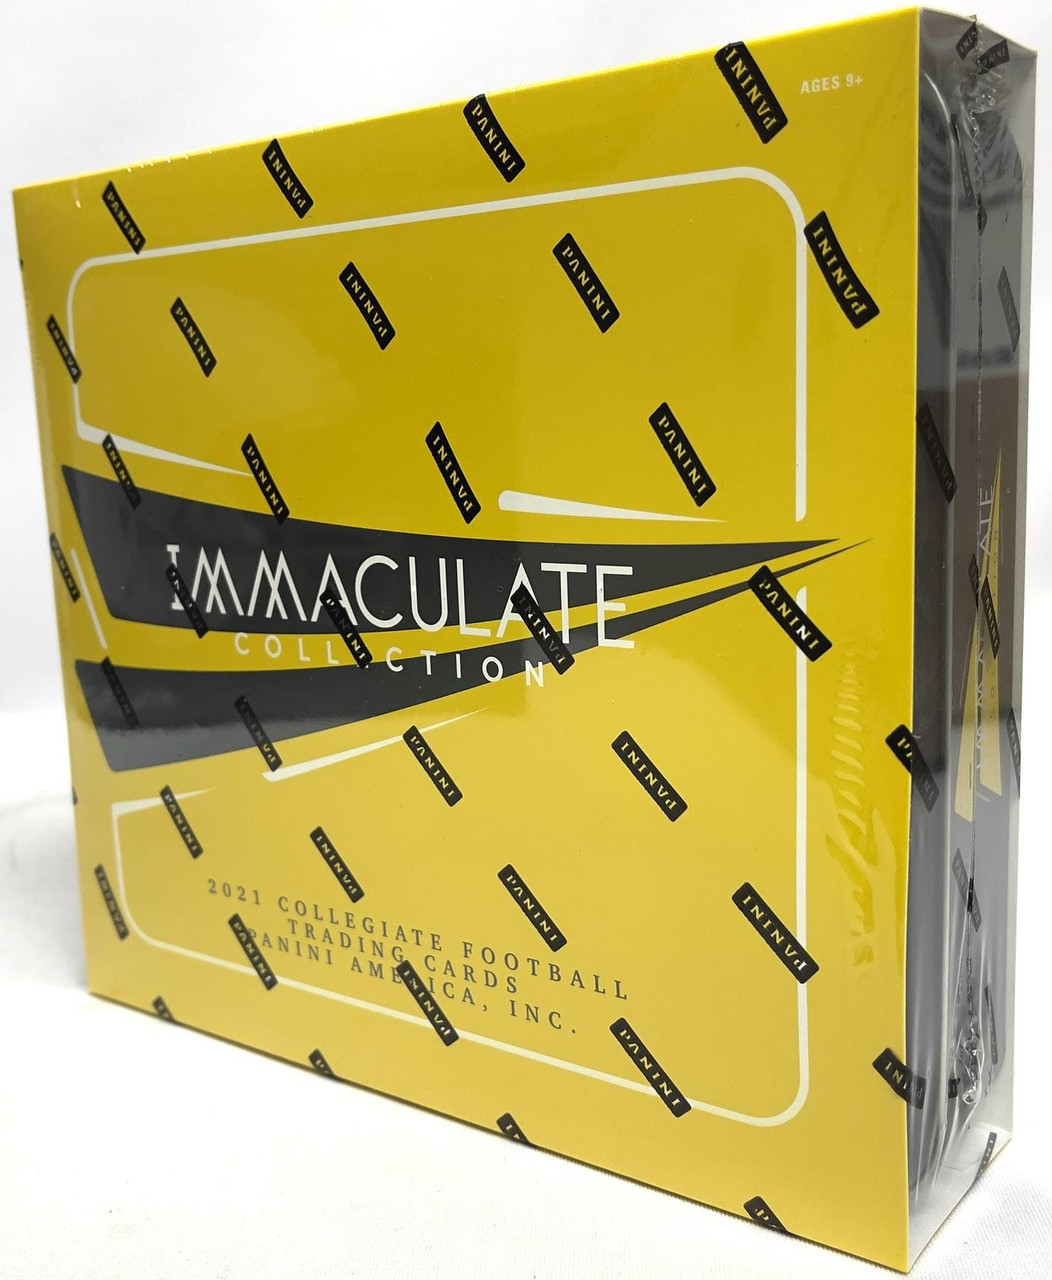 2021 Panini Immaculate Collection Collegiate Football Hobby Box